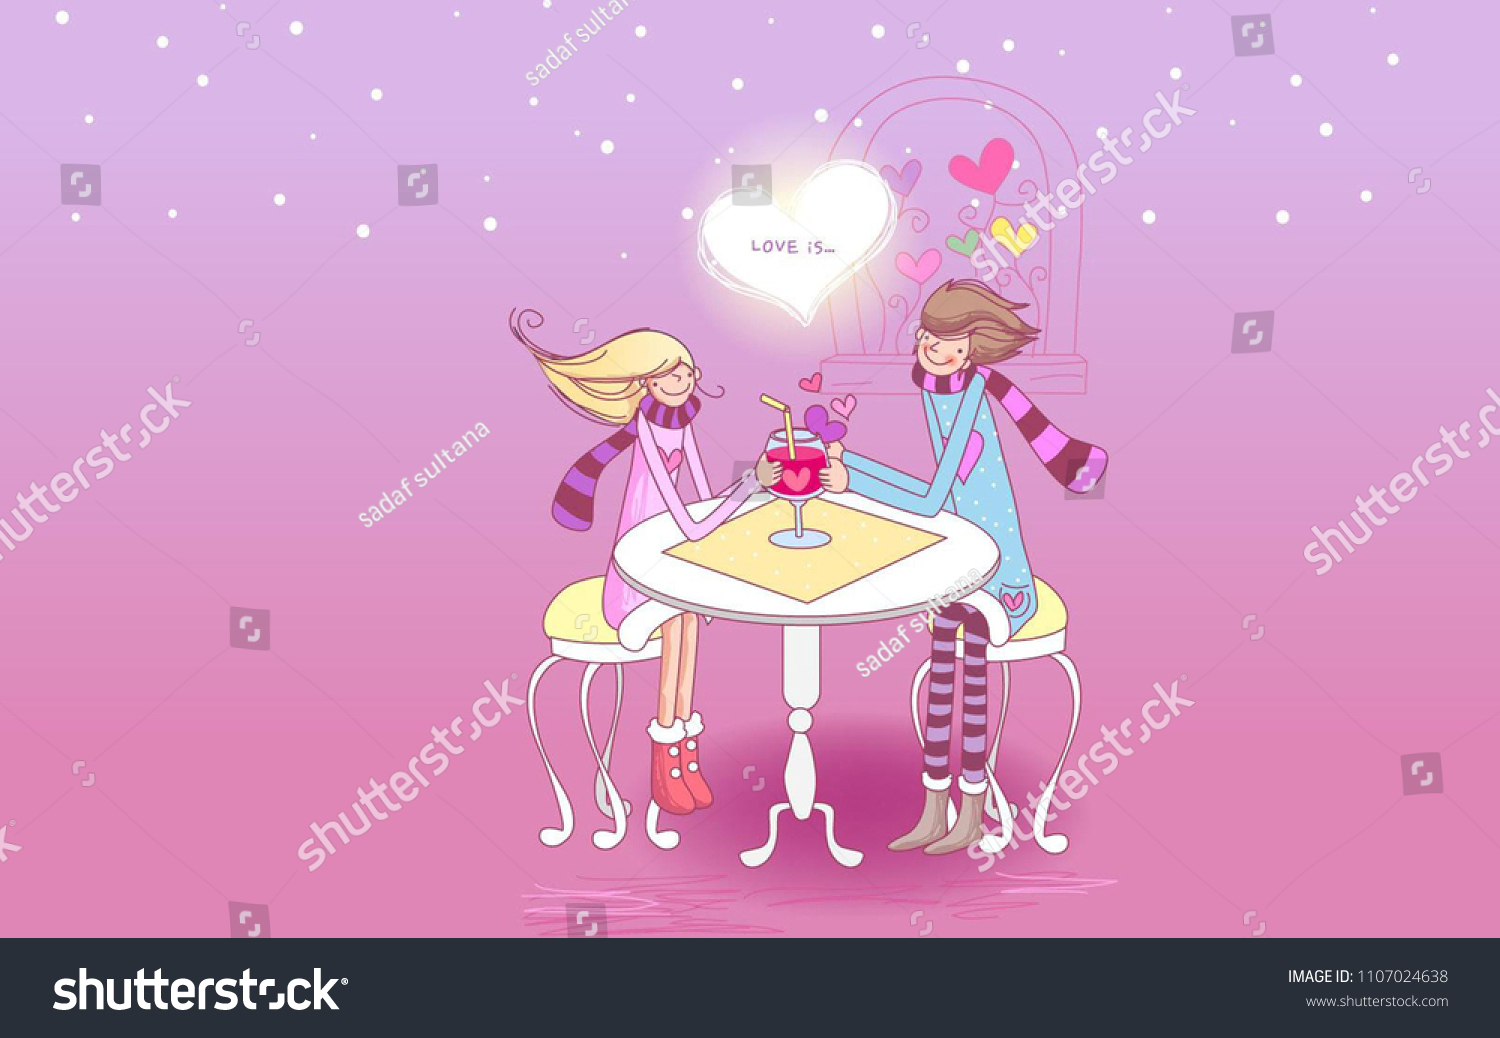 Animated Love Couple Wallpapers Mobile Cute Stock Illustration